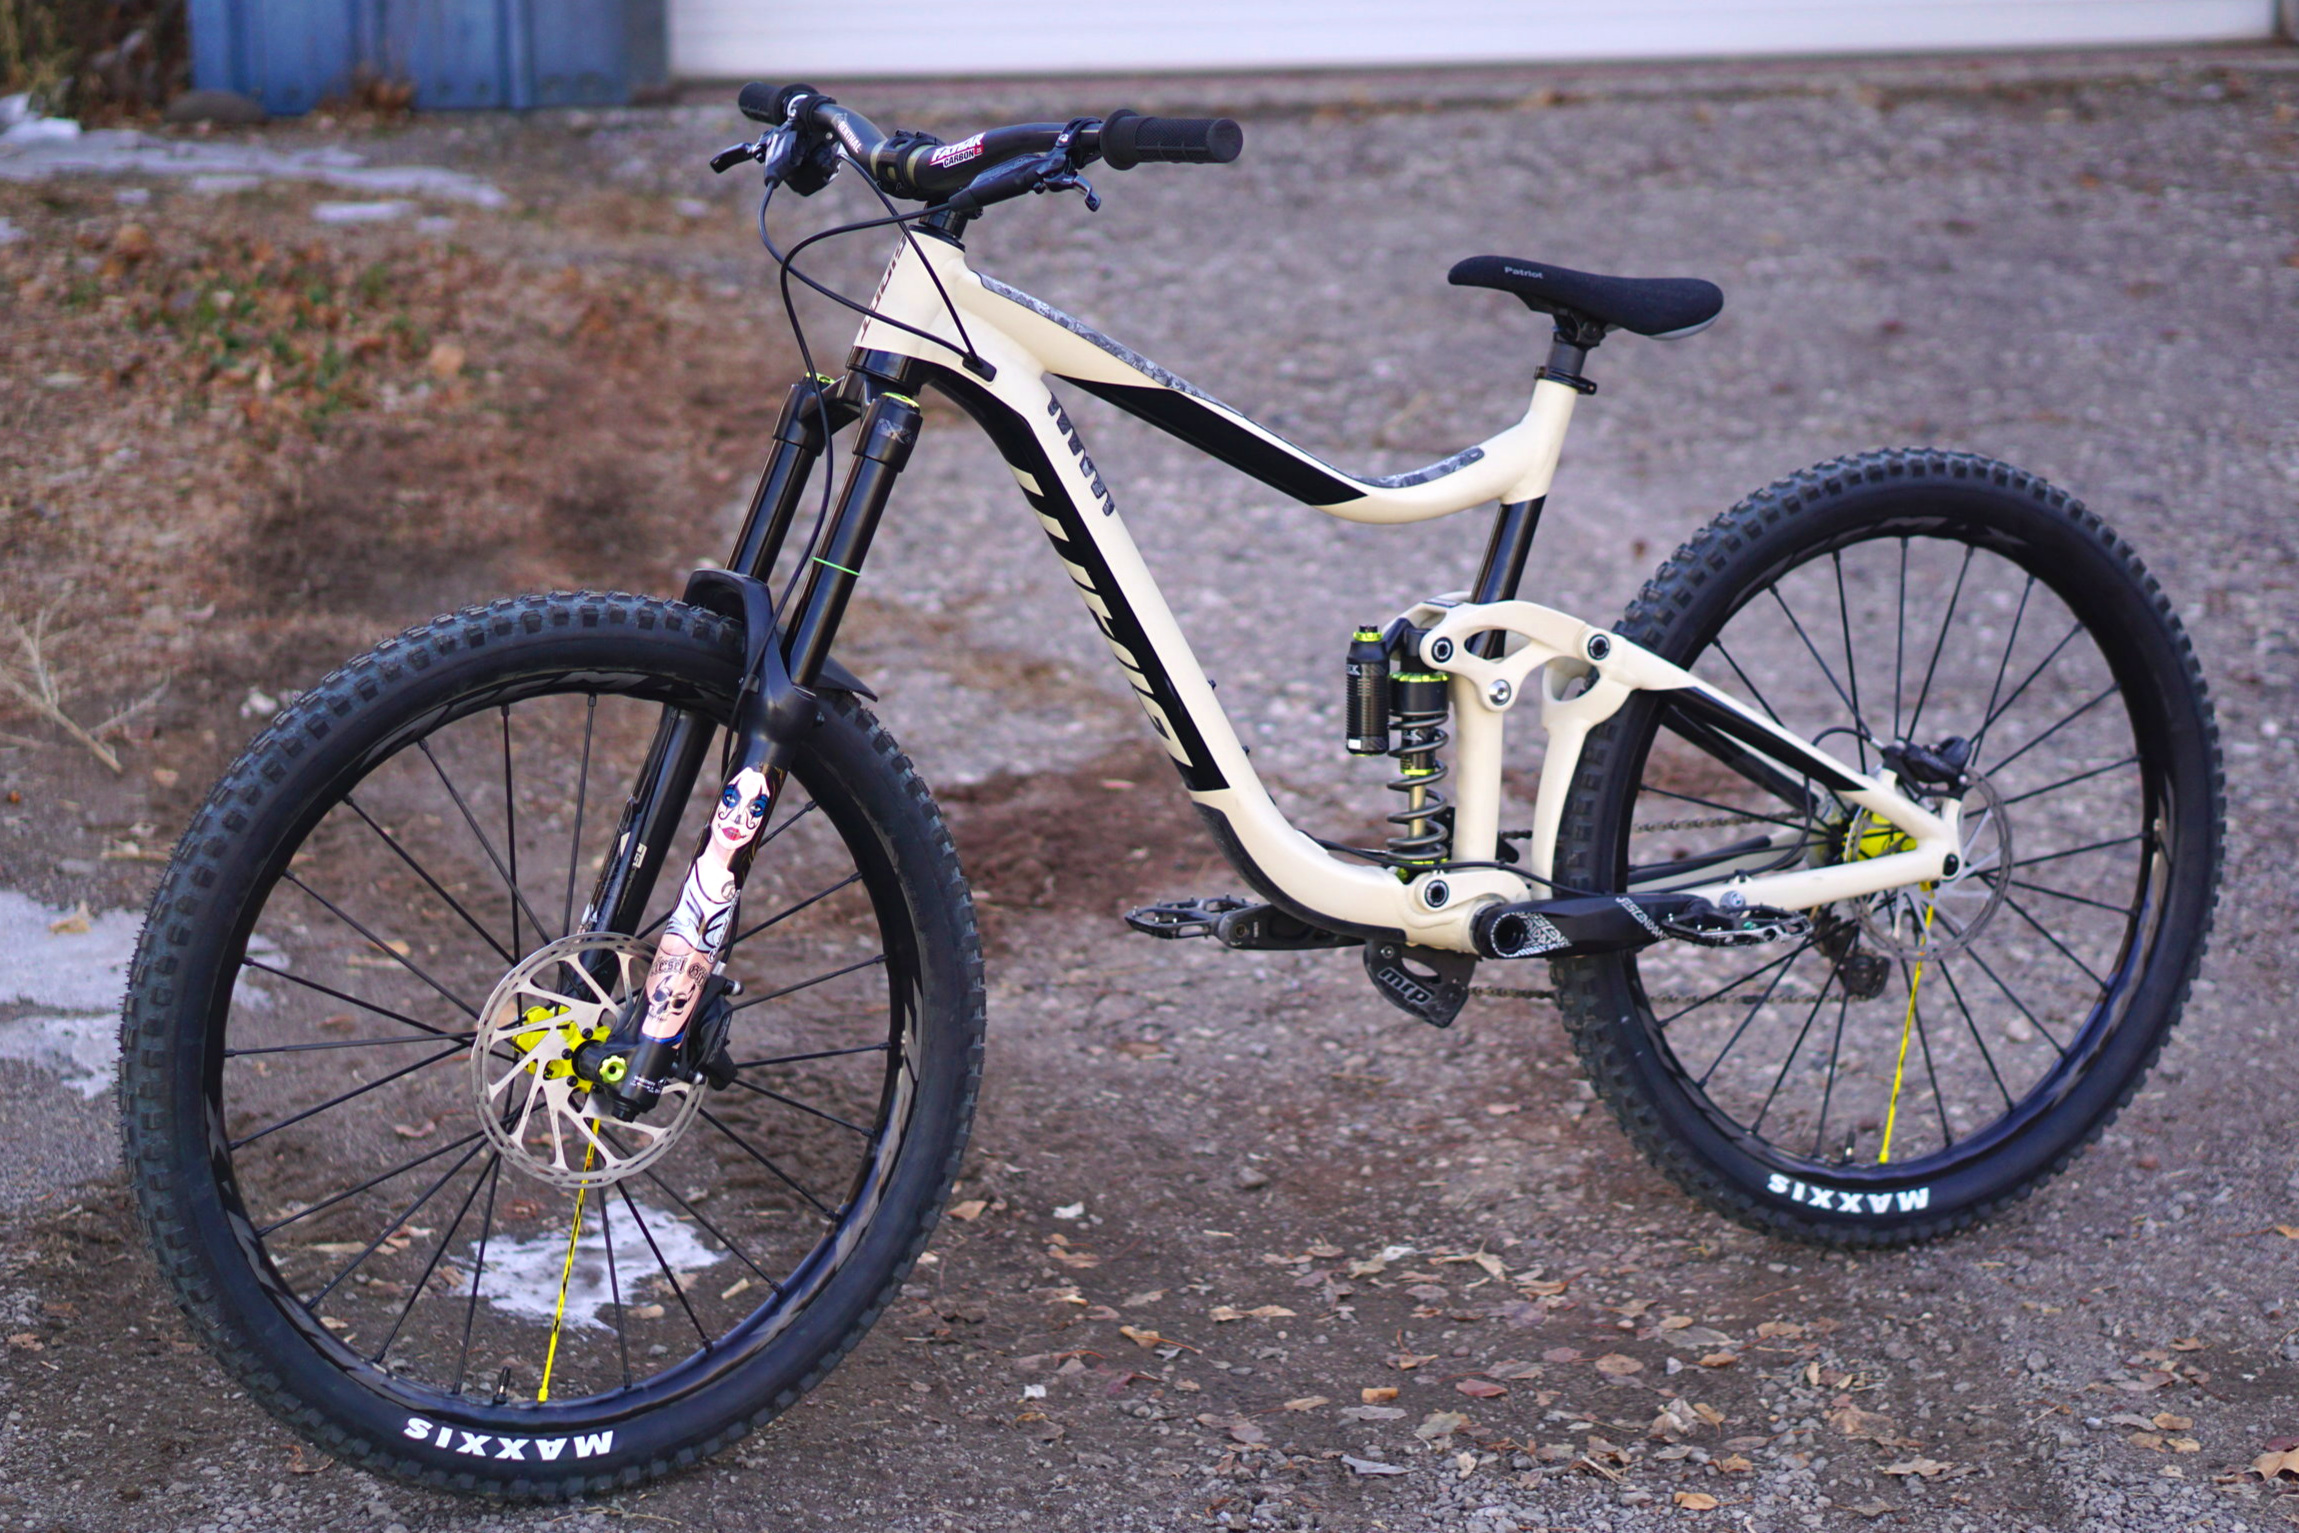 Nick's Giant Reign SX